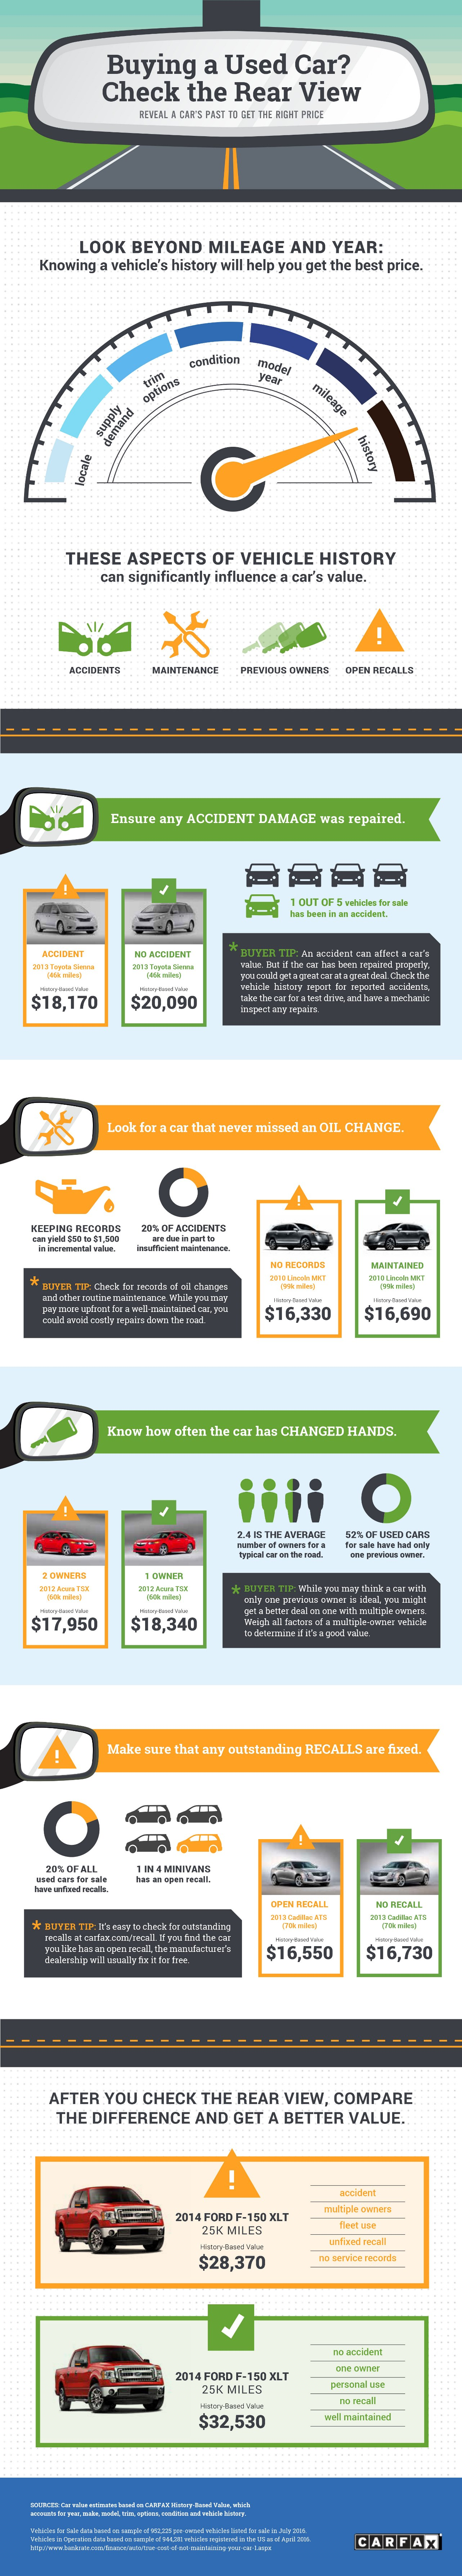 car values infographic carfax